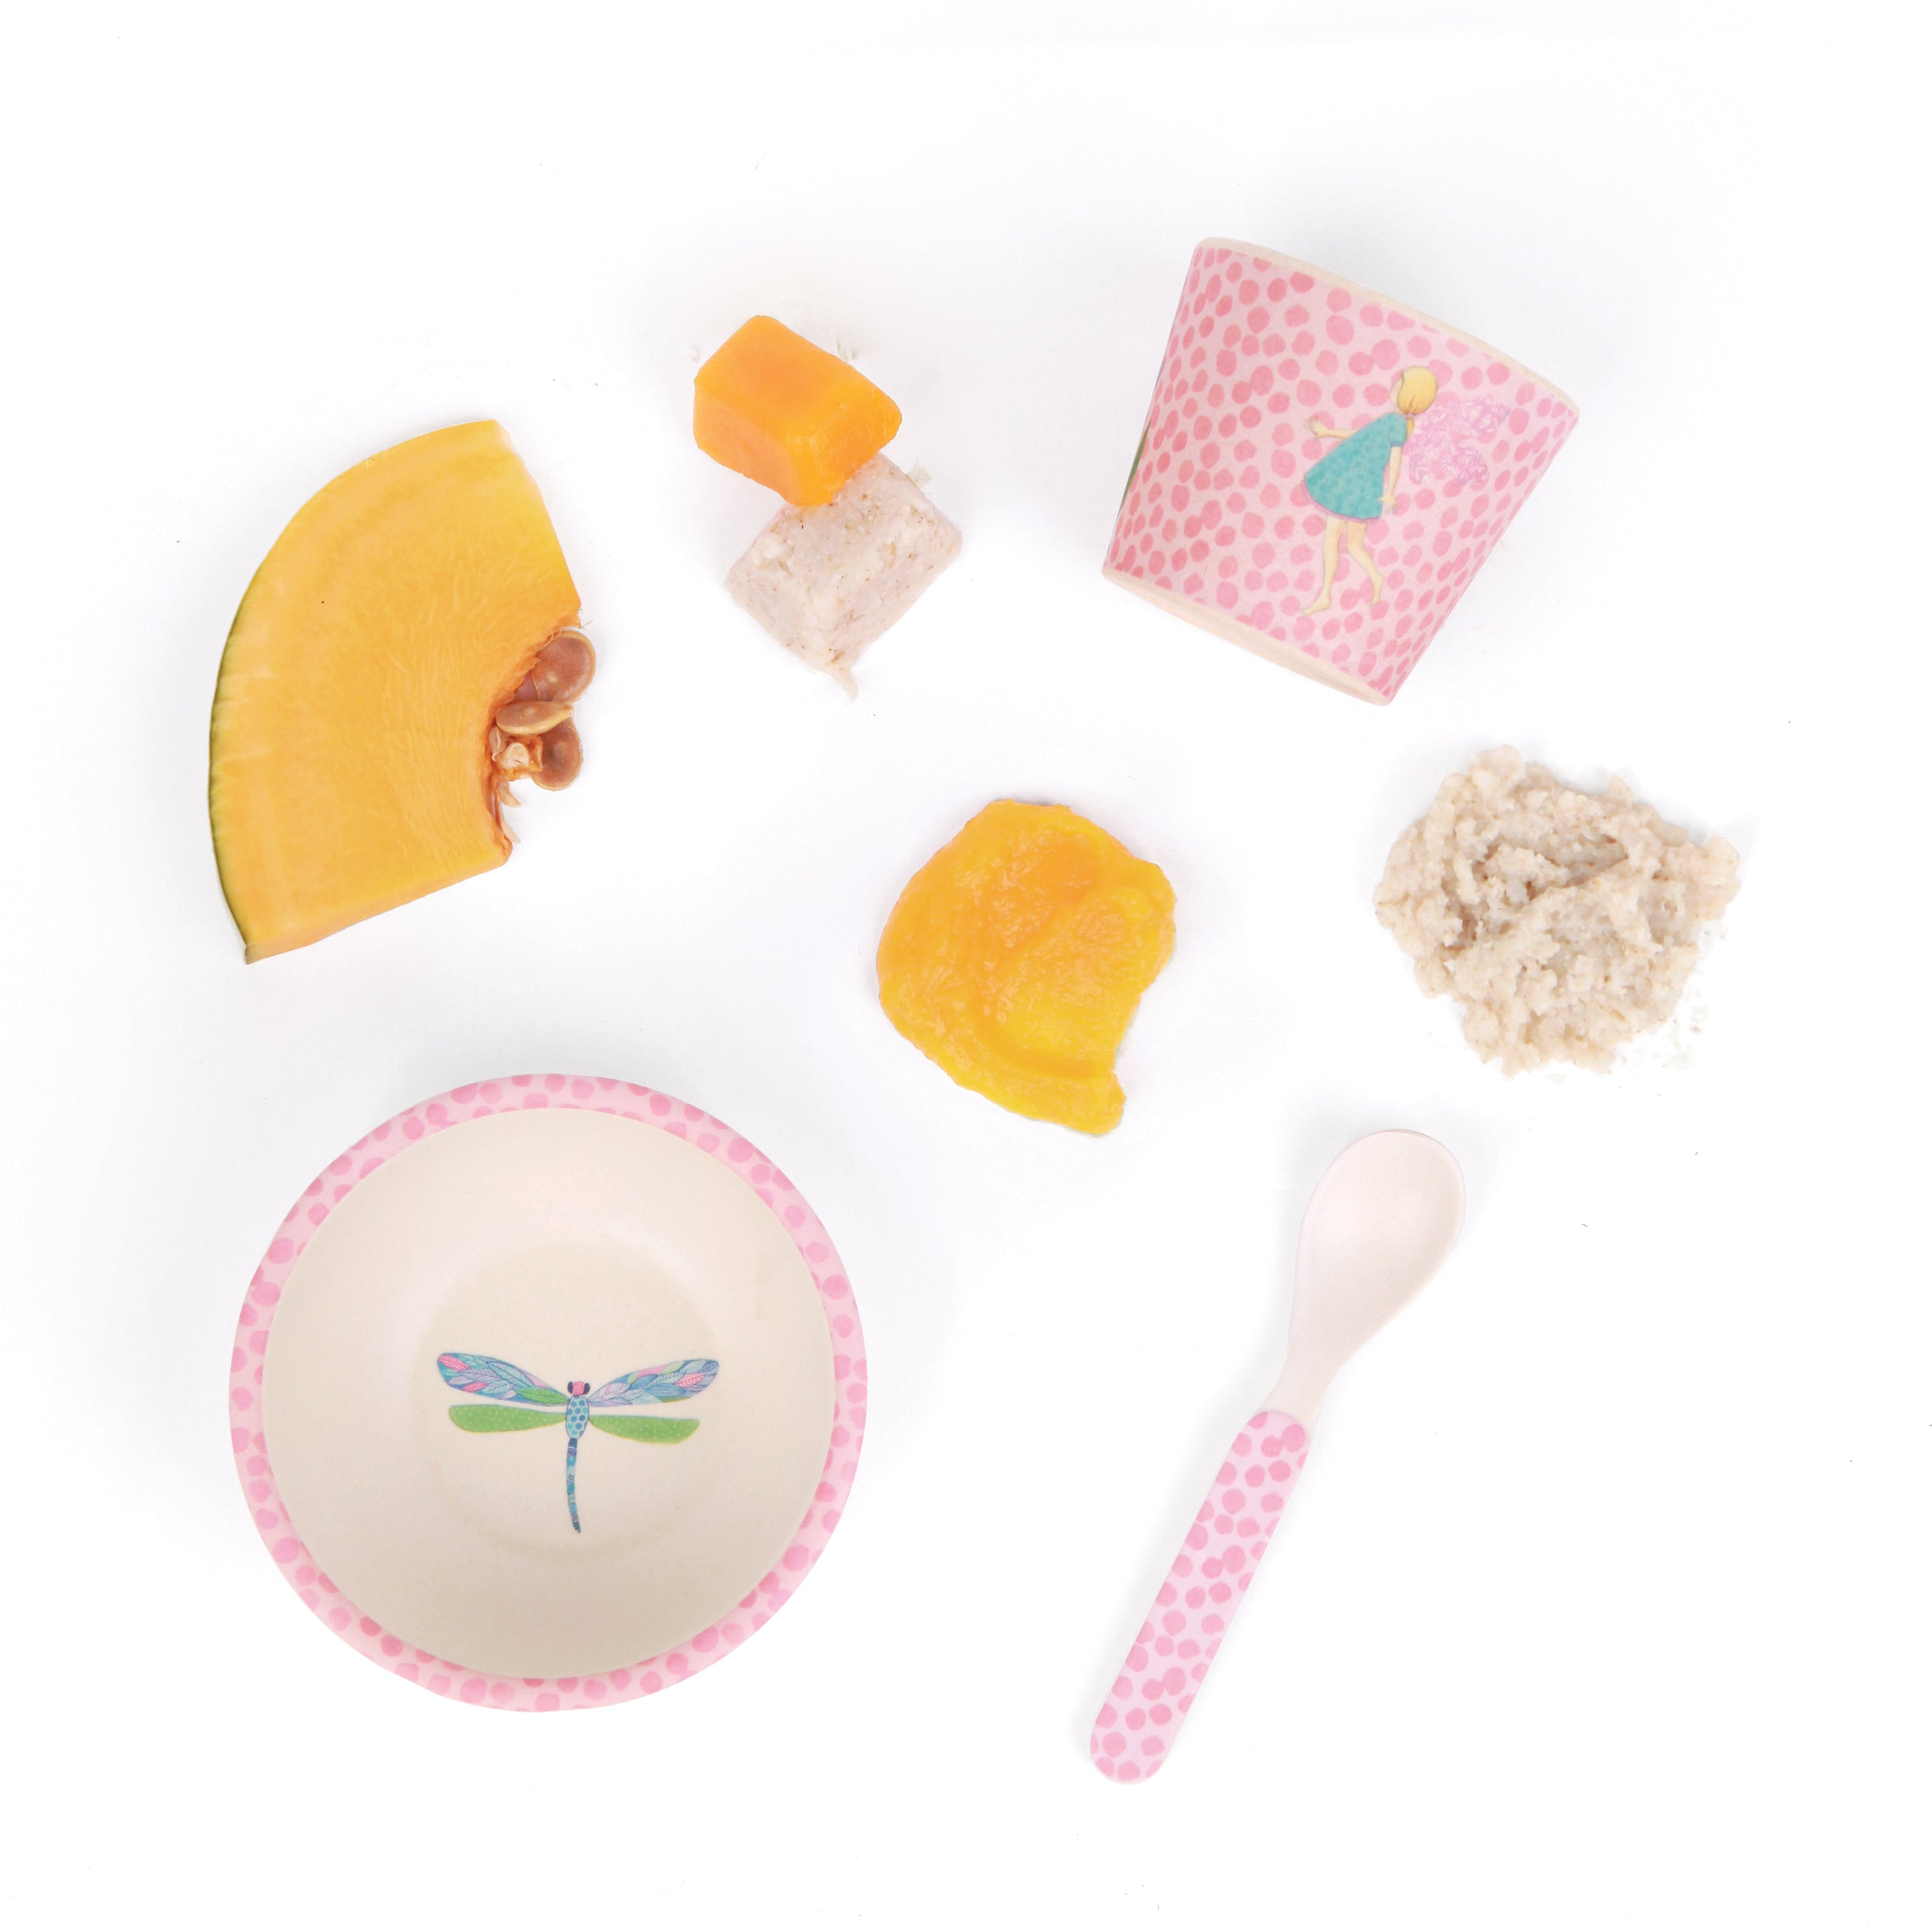 Love Mae: Baby Feeding Set - Fairy - KidsnToys.co.nz (4713058500679)